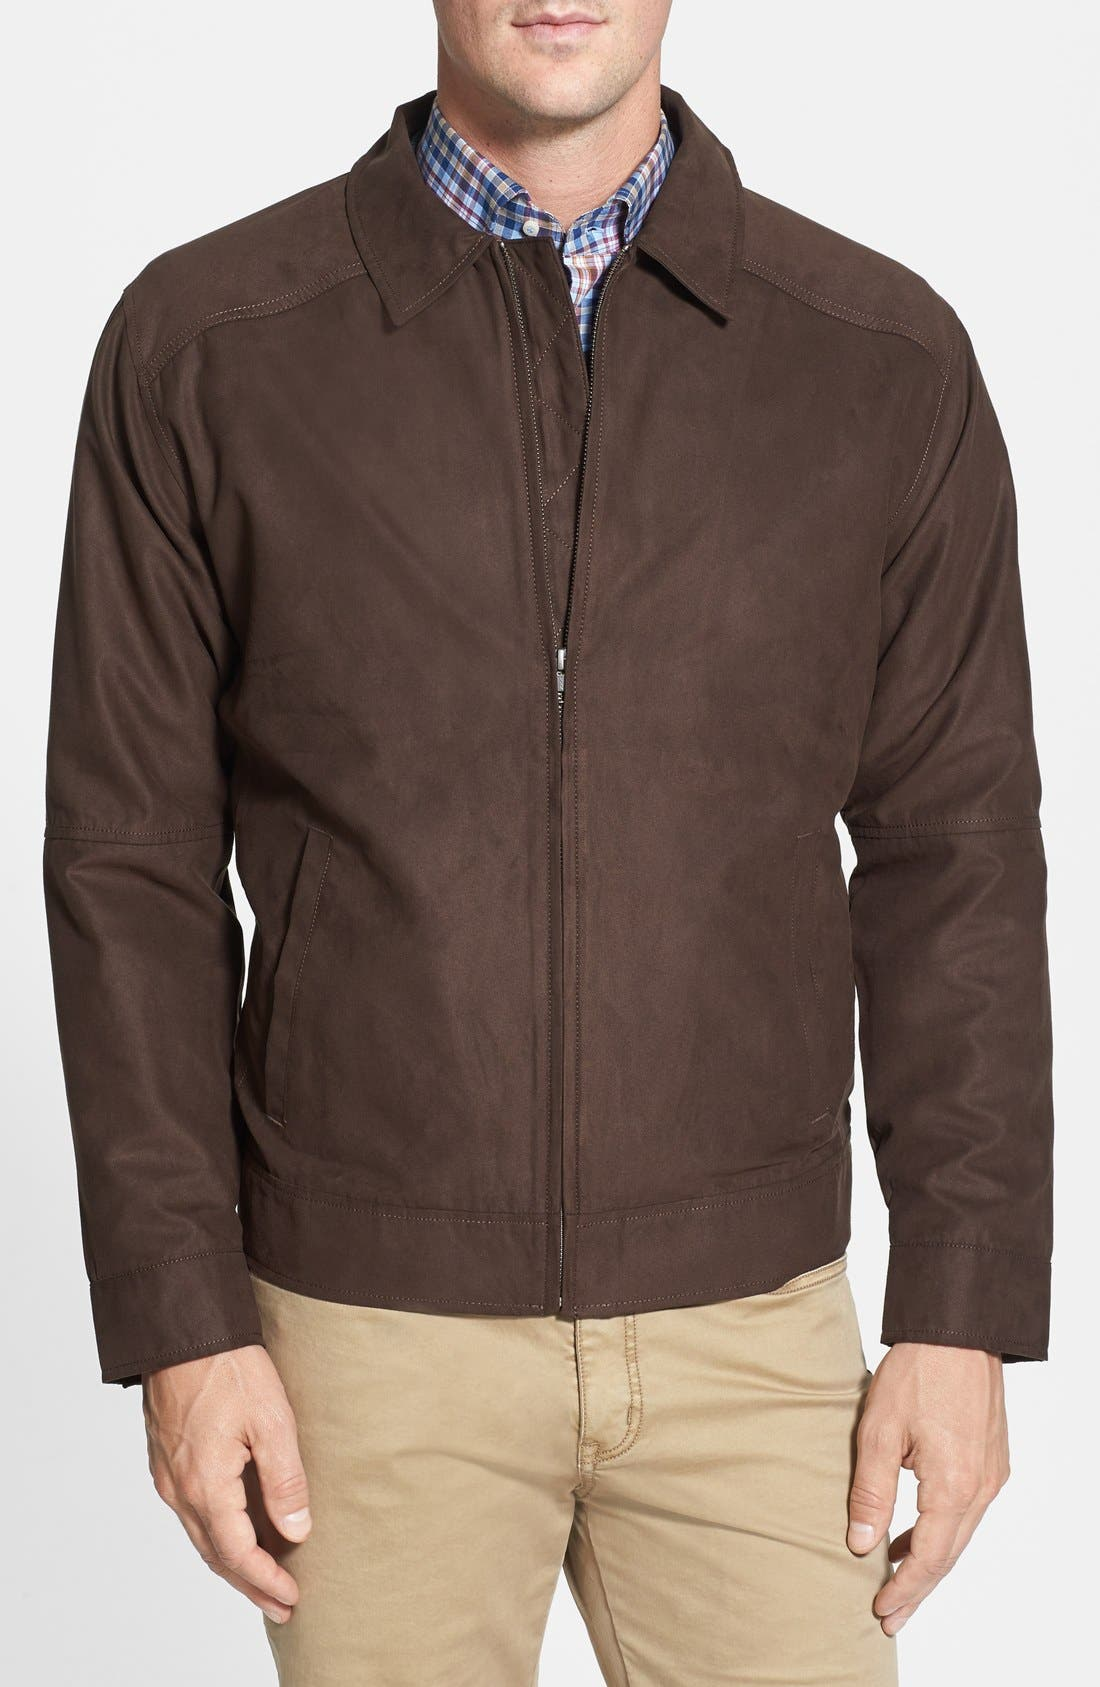 Roosevelt Water Resistant Full Zip Jacket,                         Main,                         color, BITTERSWEET BROWN